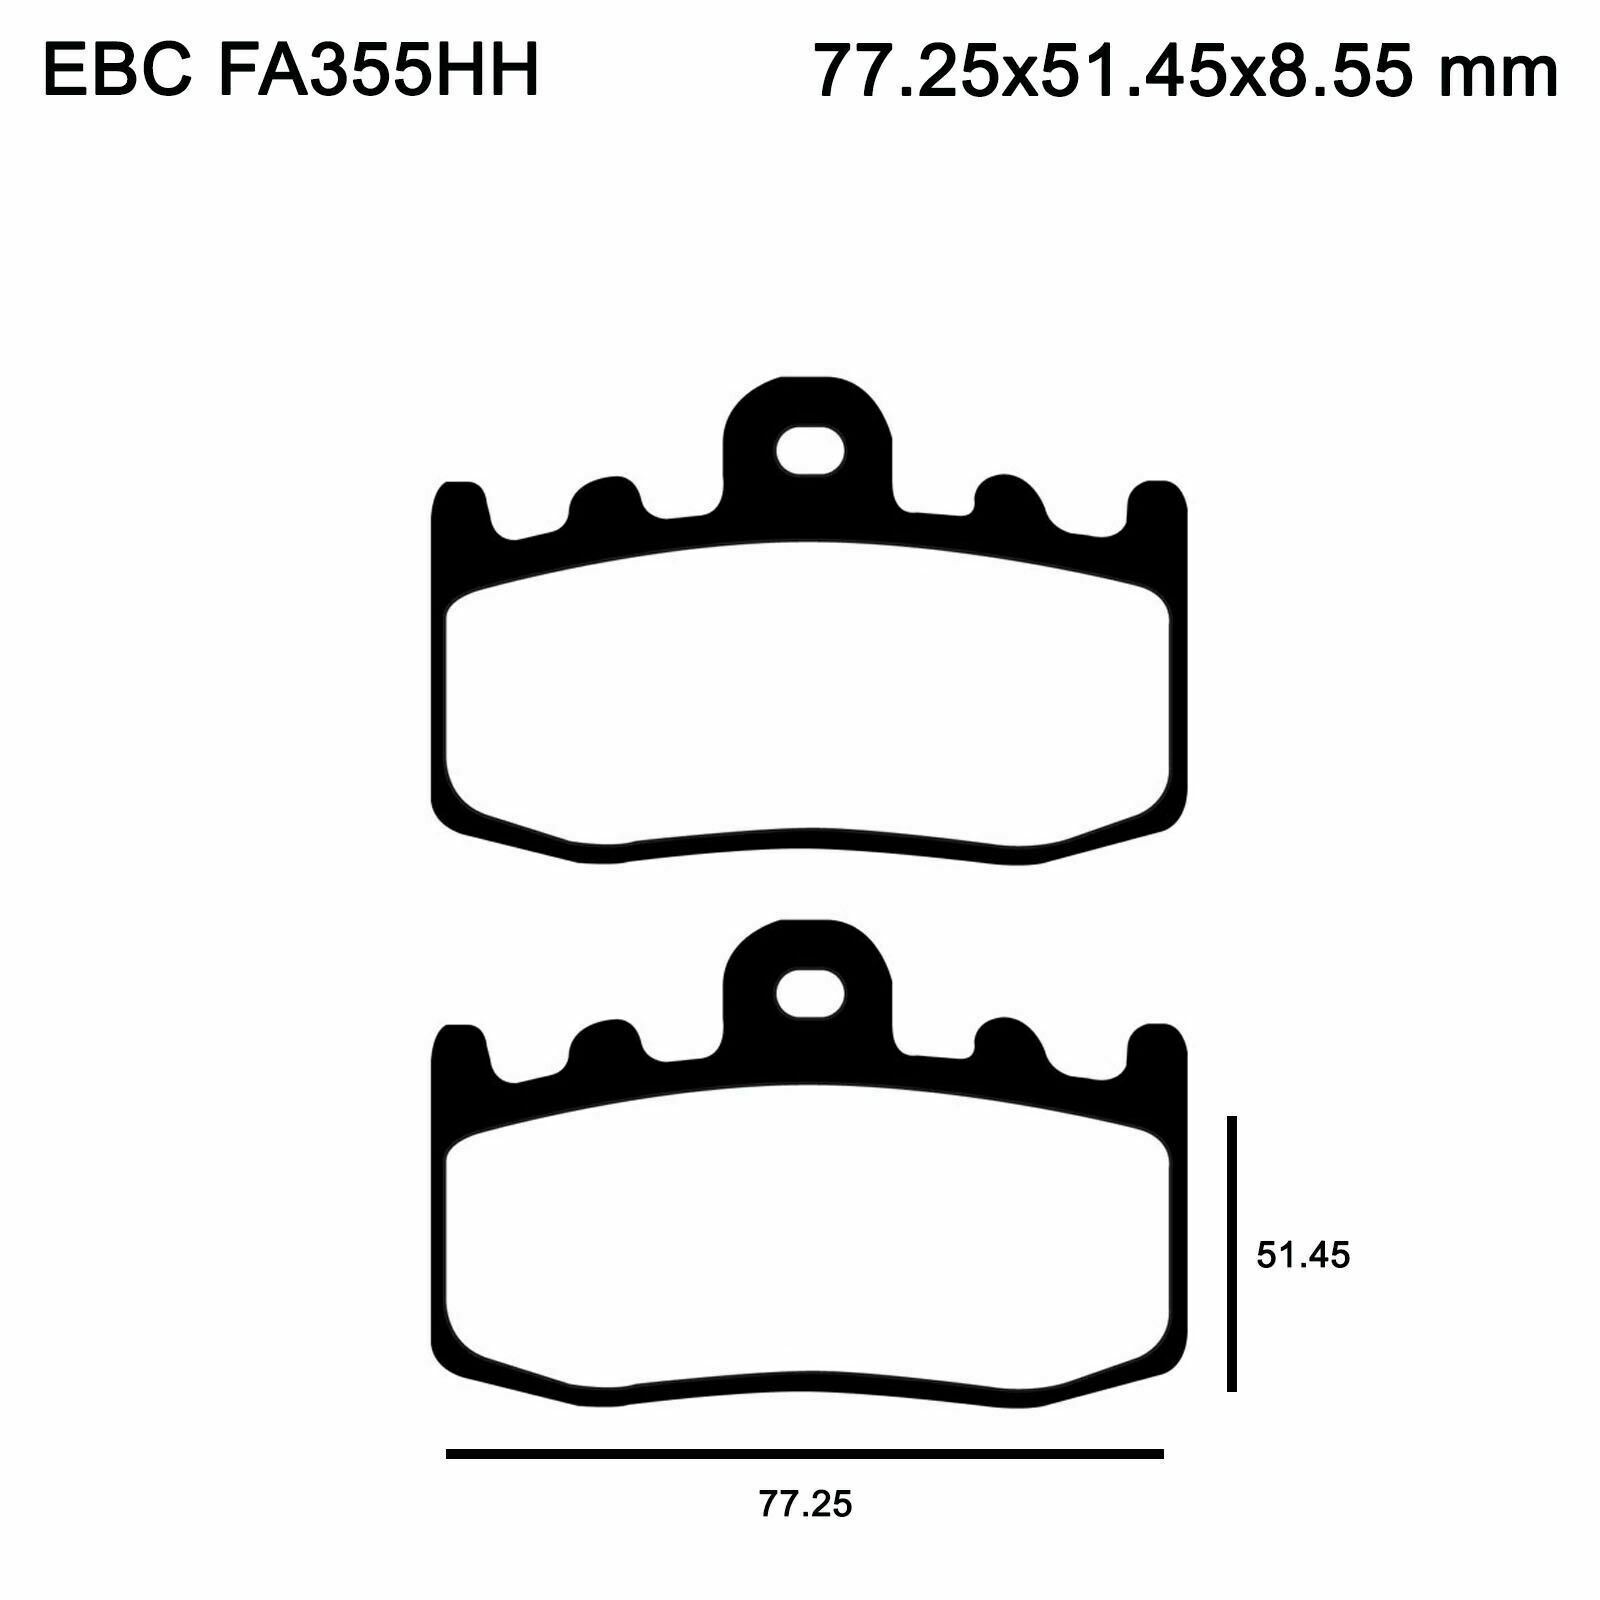 EBC FA335HH Replacement Brake Pads for Front BMW R 1200 RT 07-13